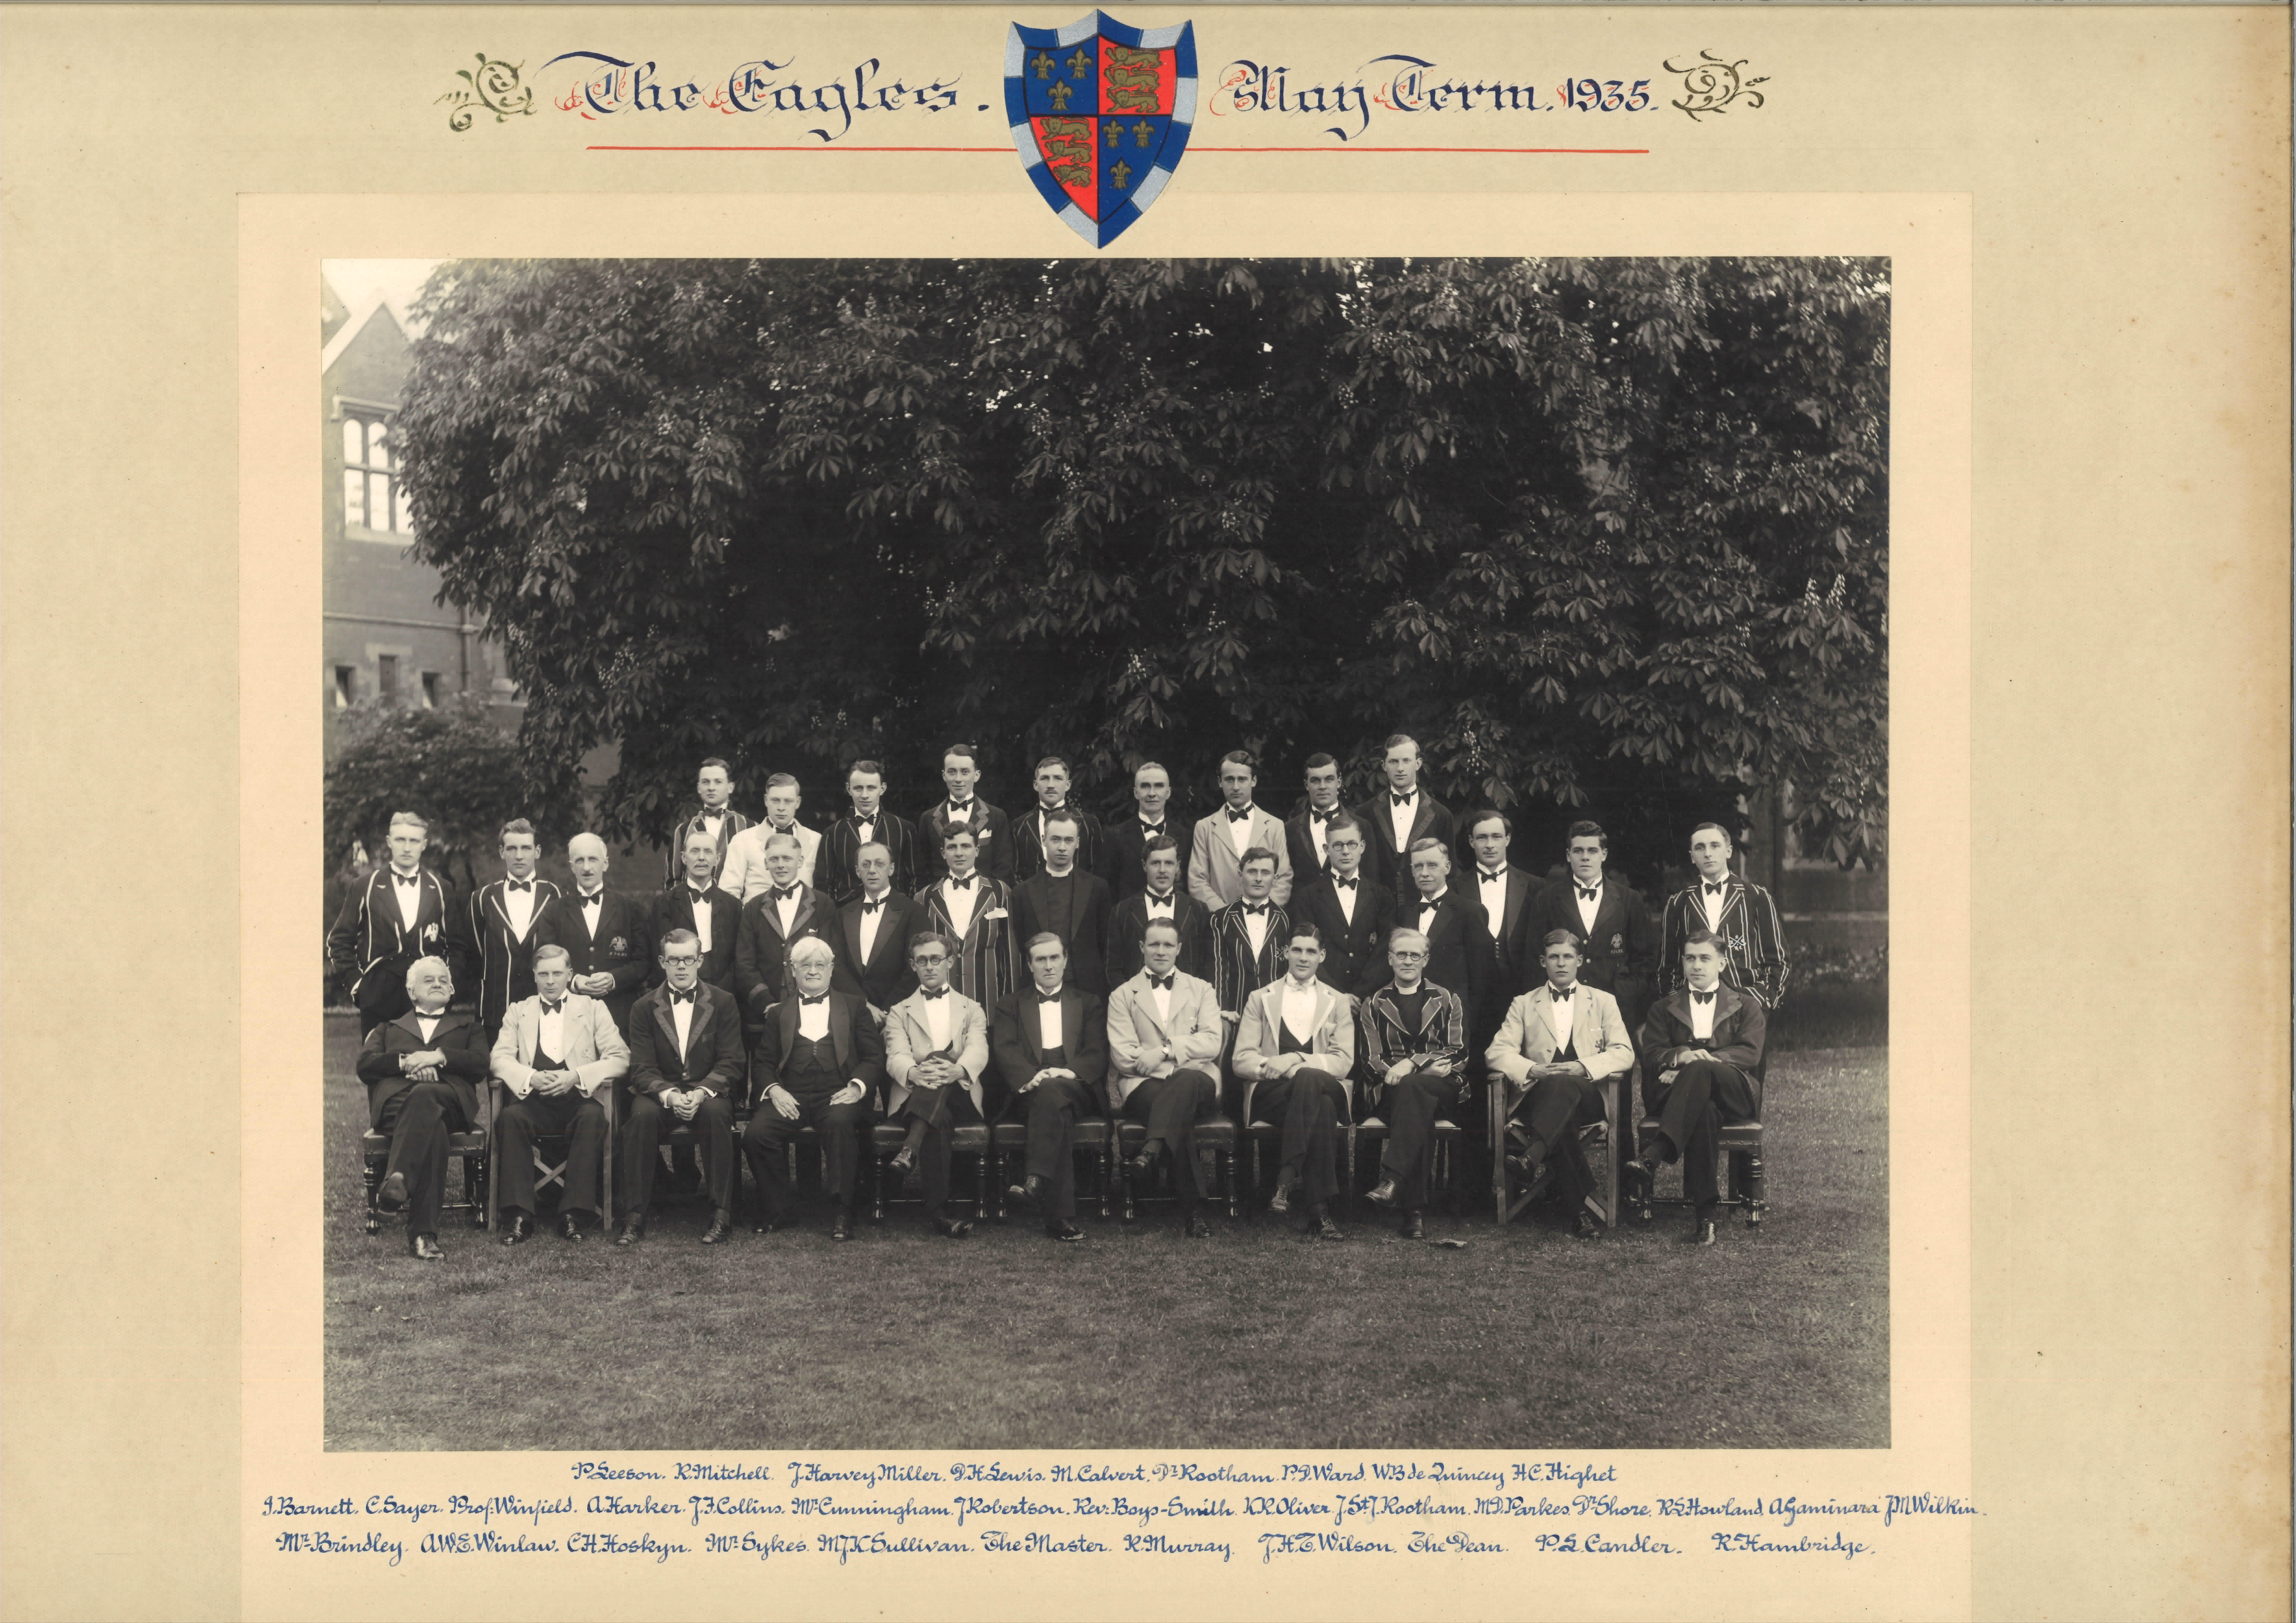 Cyril Rootham and Jasper Rootham in The Eagles at St John's College (1935)